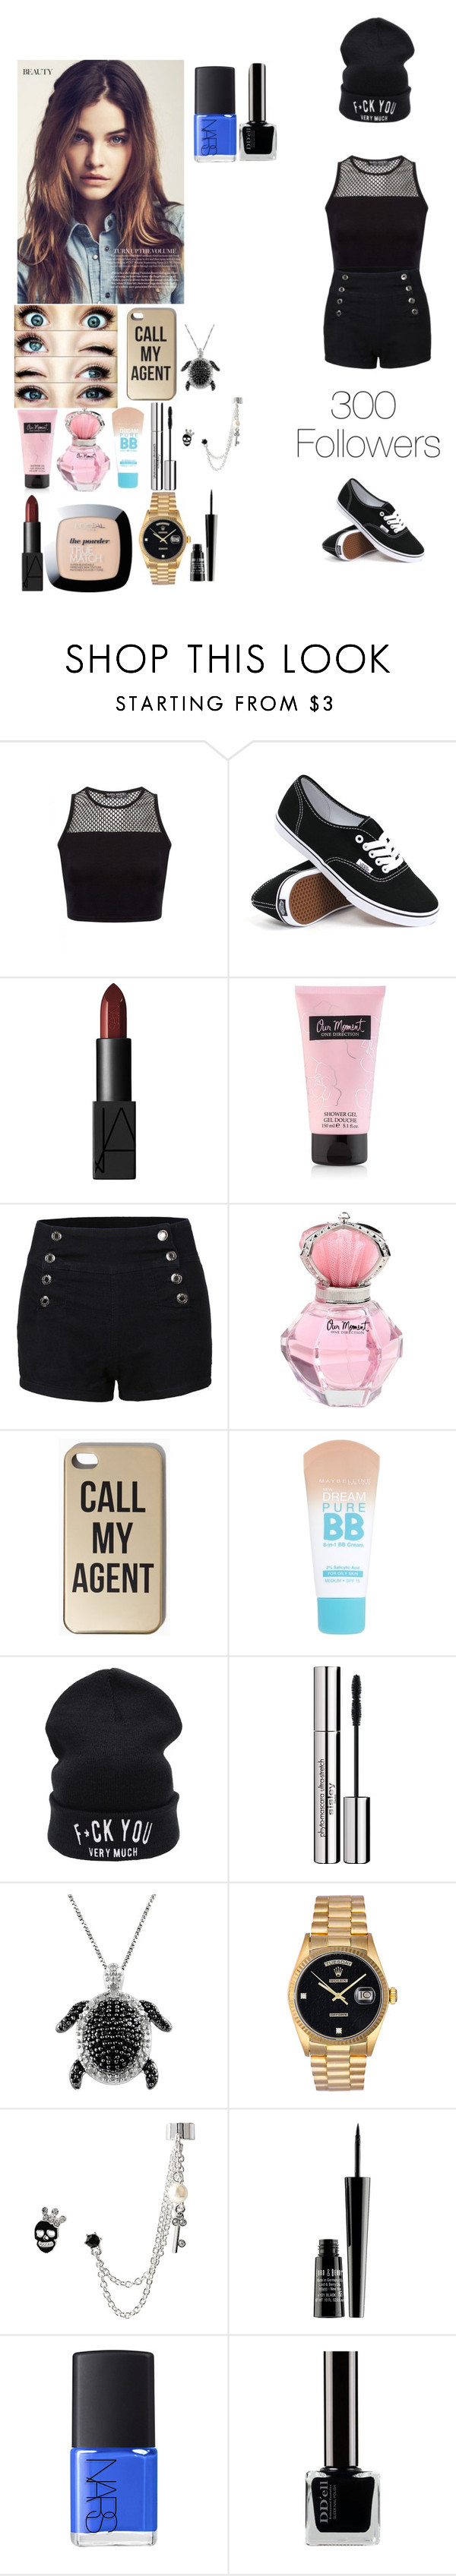 """""""300 followers"""" by rosemie ❤ liked on Polyvore featuring Vans, NARS Cosmetics, Maybelline, Sisley Paris, Jewel Exclusive, Rolex, Betsey Johnson, Lord & Berry, thankyou and followers"""